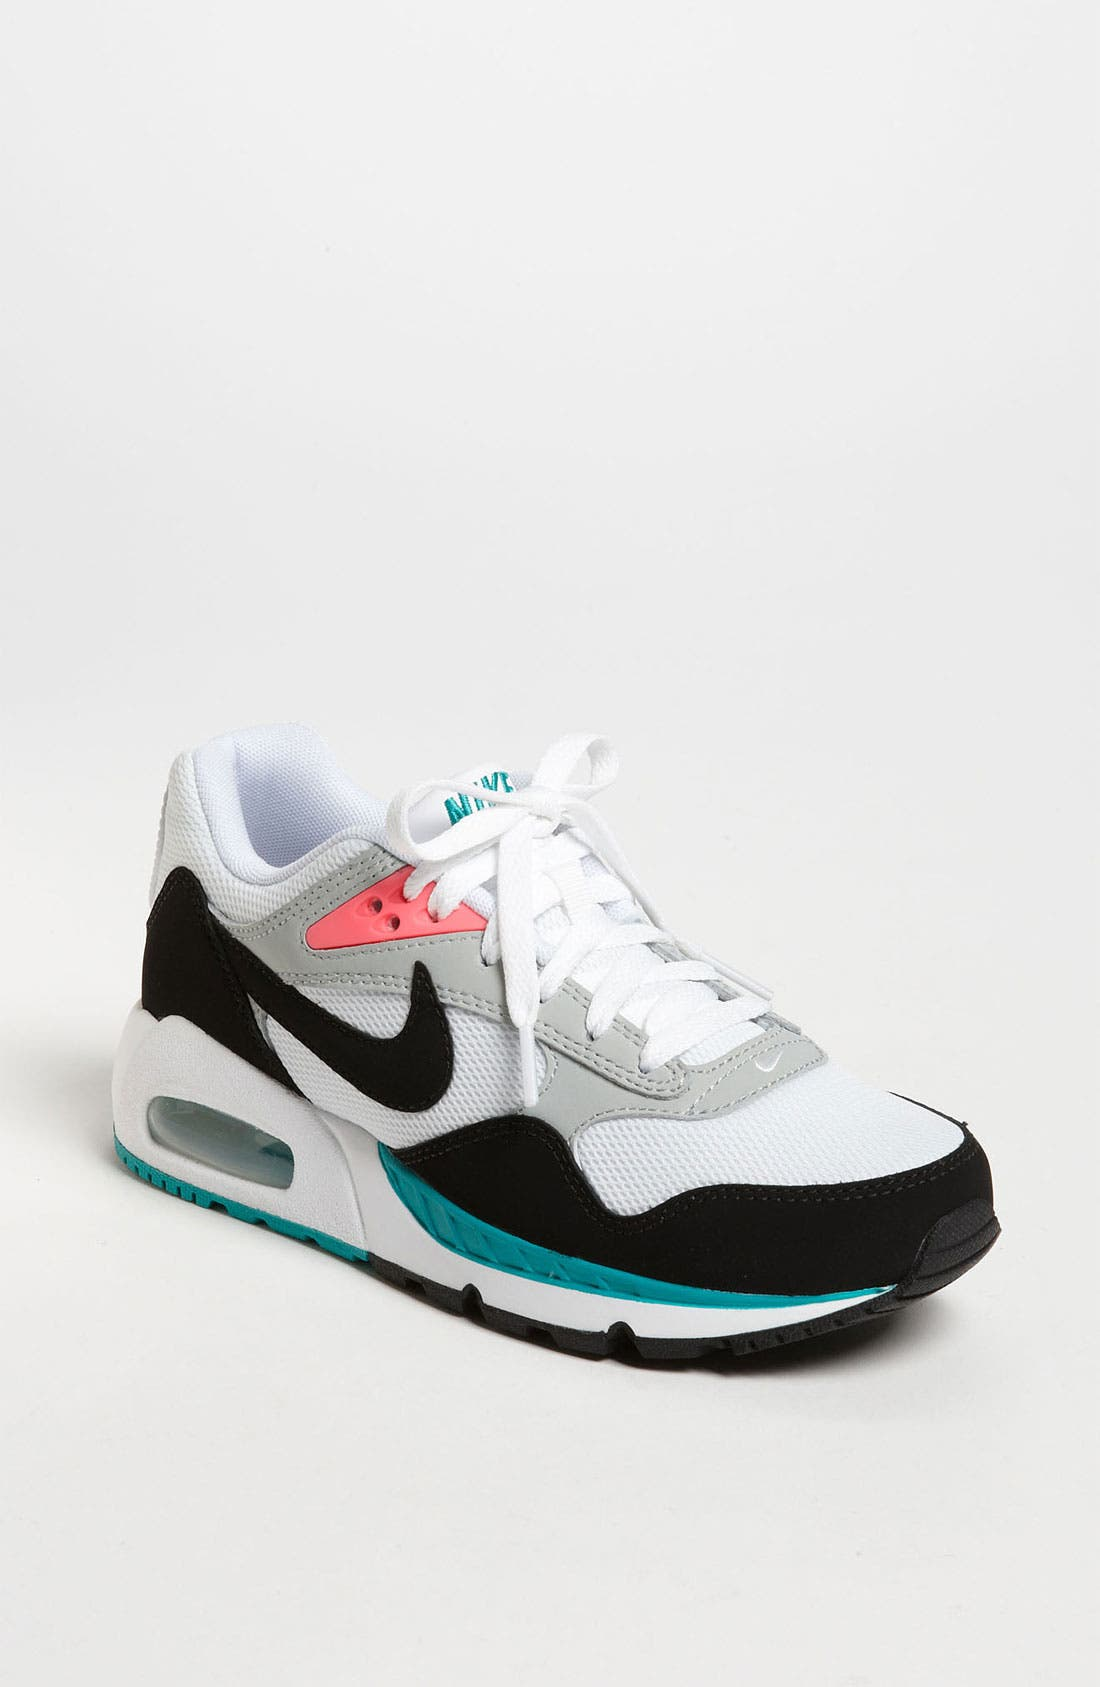 Main Image - Nike 'Air Max Sunrise' Sneaker (Women)